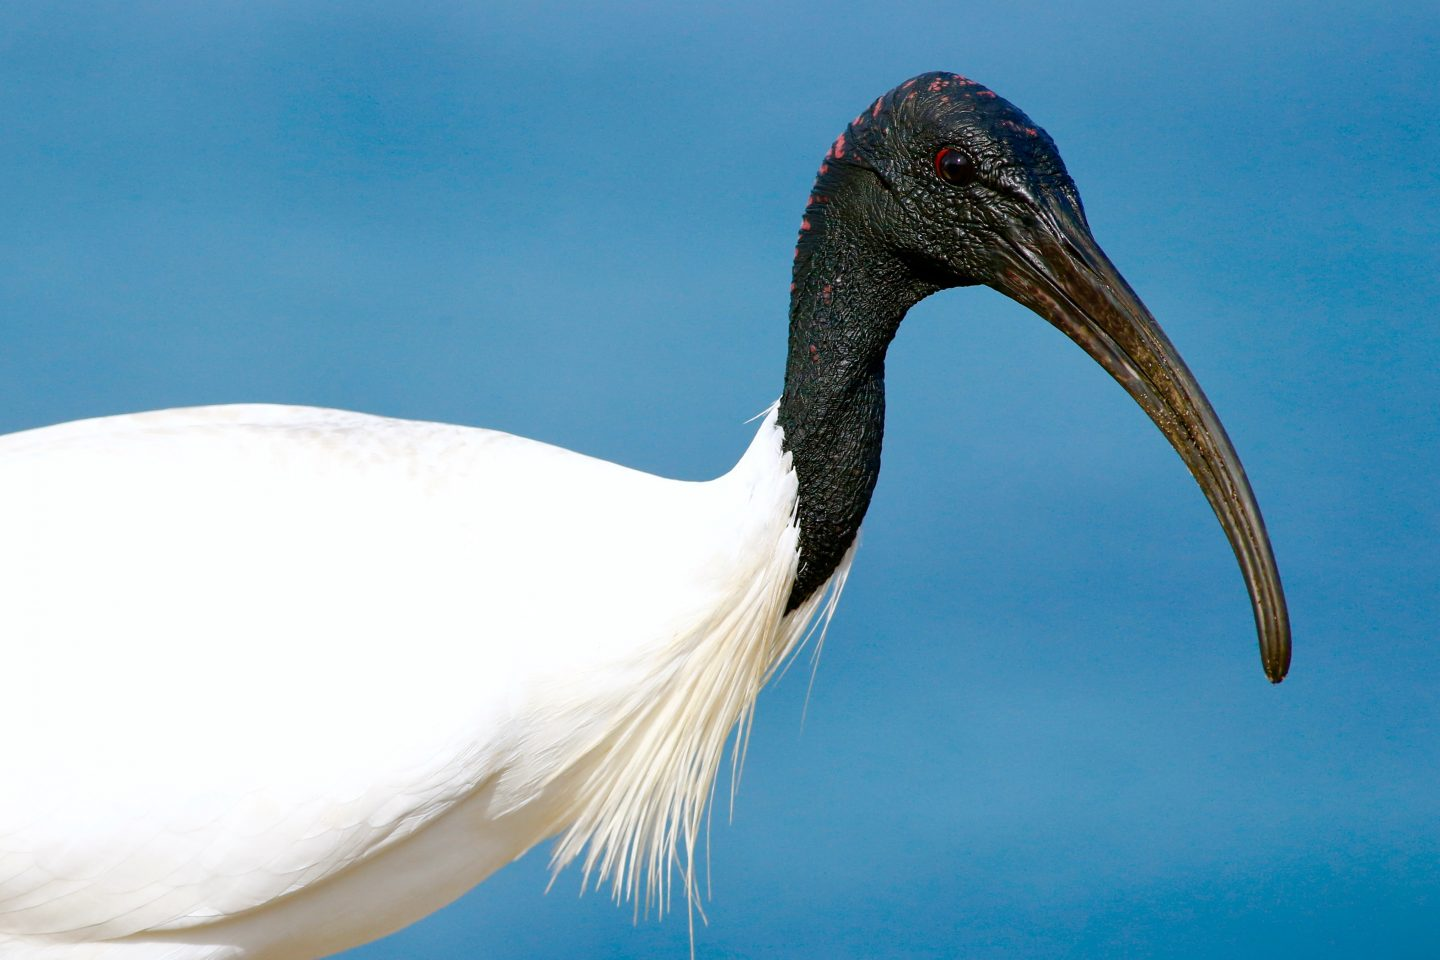 Animals in Sydney, The Ibis